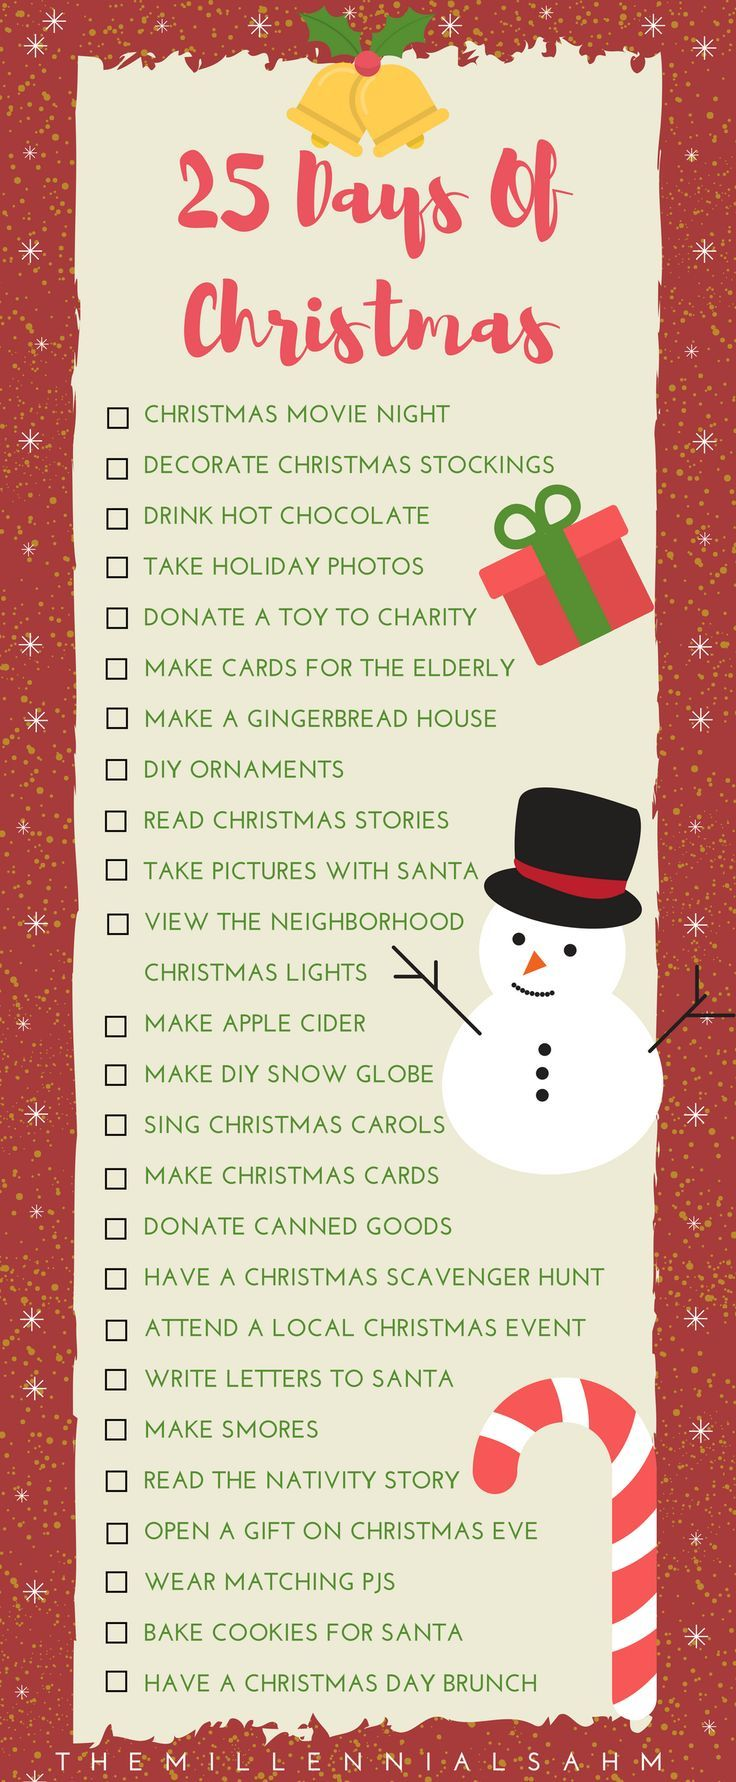 25 Days of Christmas - Holiday Traditions Your Family Will Love ...